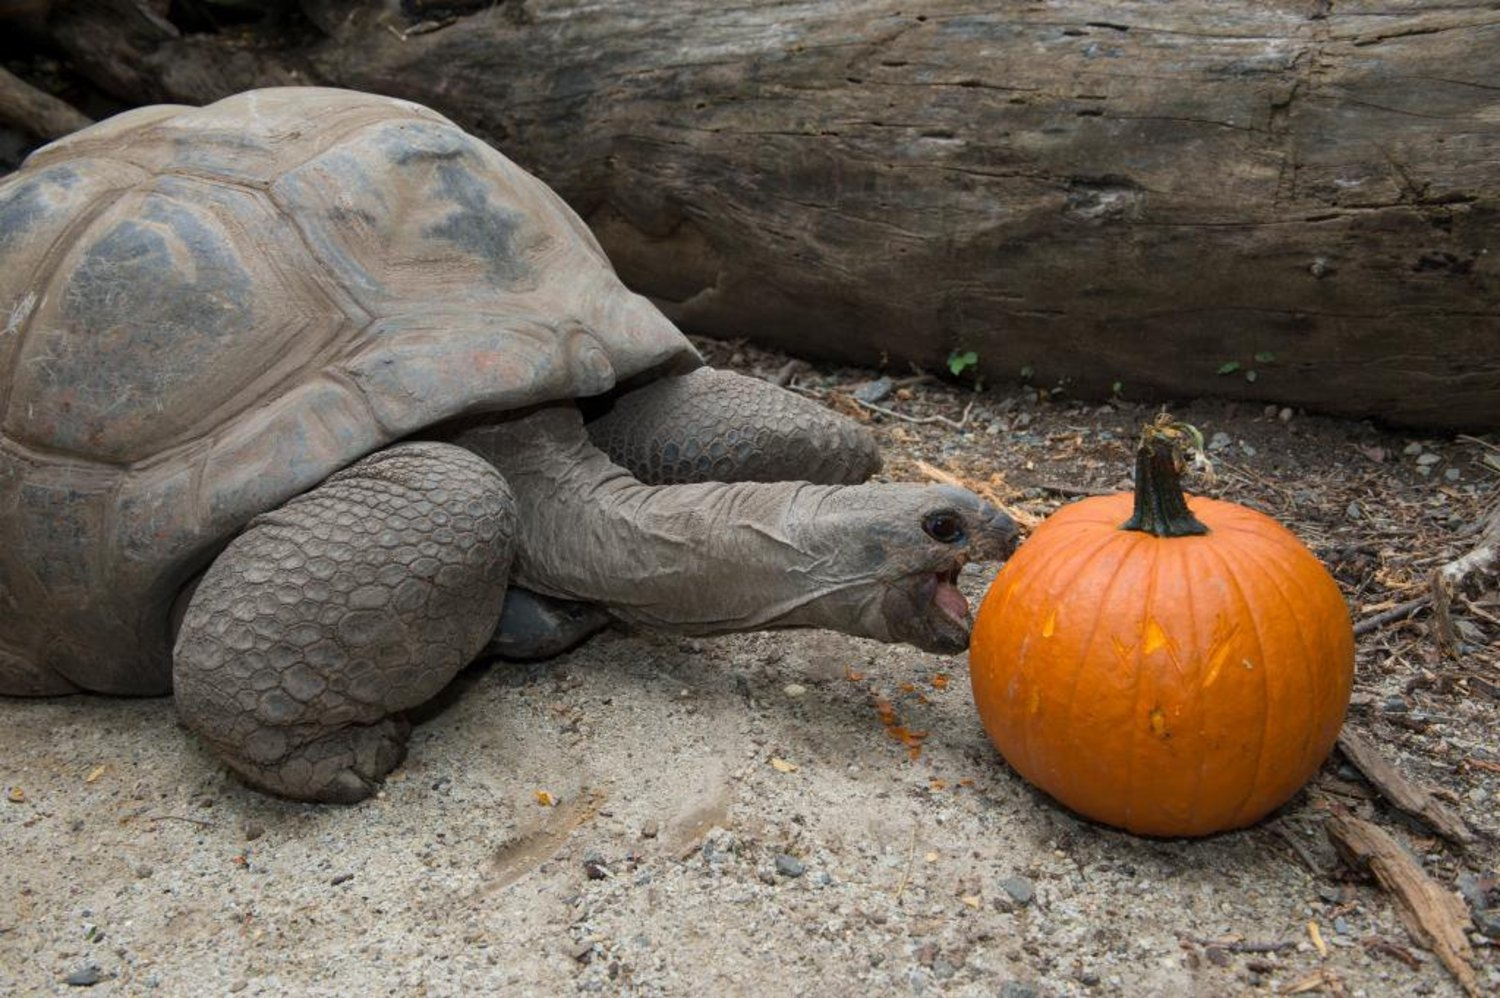 Keep your eyes peeled around the zoo today, some of our animals are getting holiday pumpkin treats! http://t.co/VHlM6SM94s